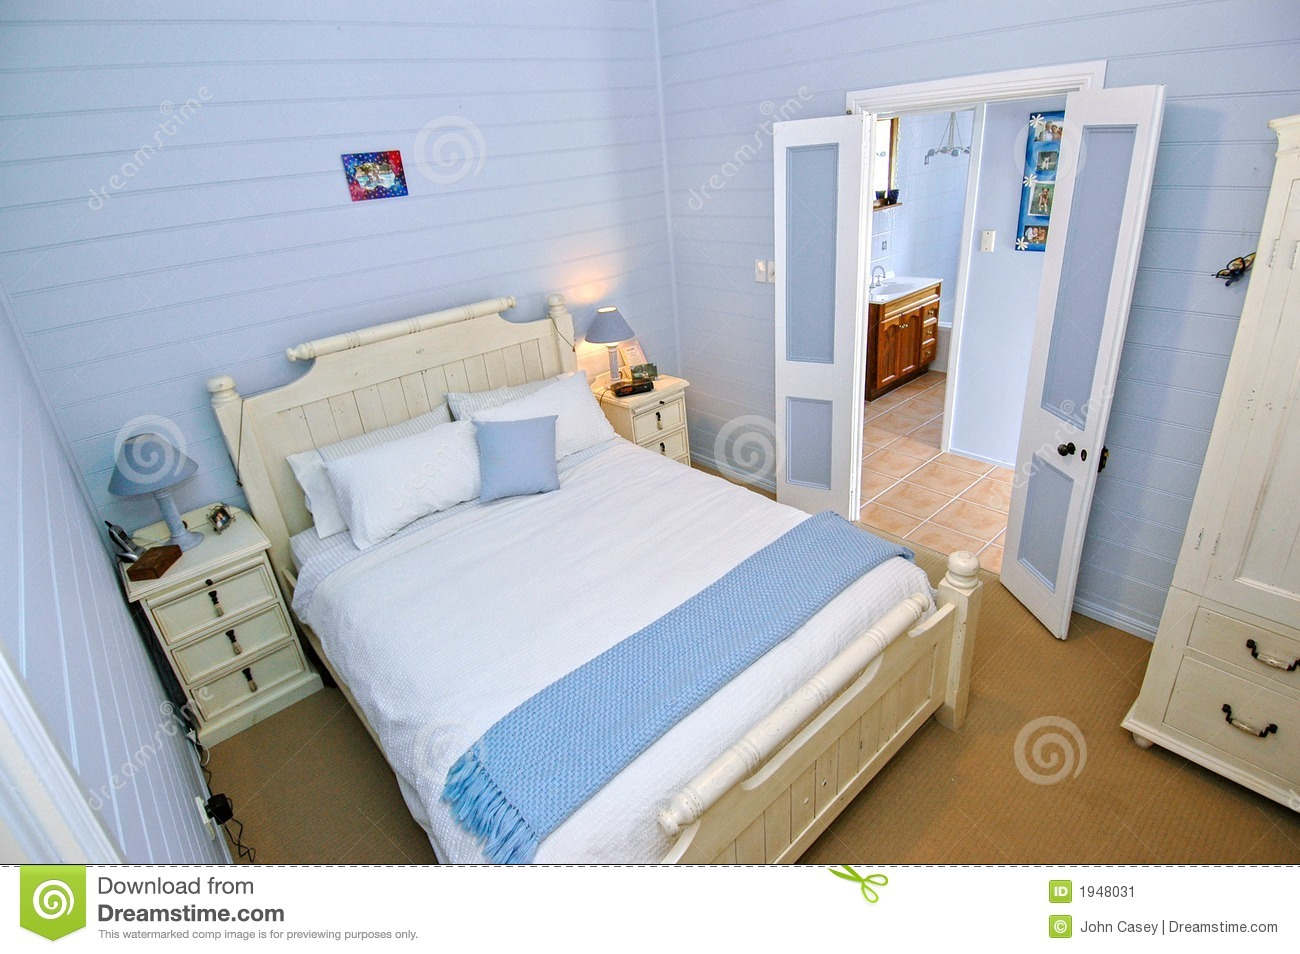 light blue bedroom design bedroom with light blue walls stock image image 1948031 15806